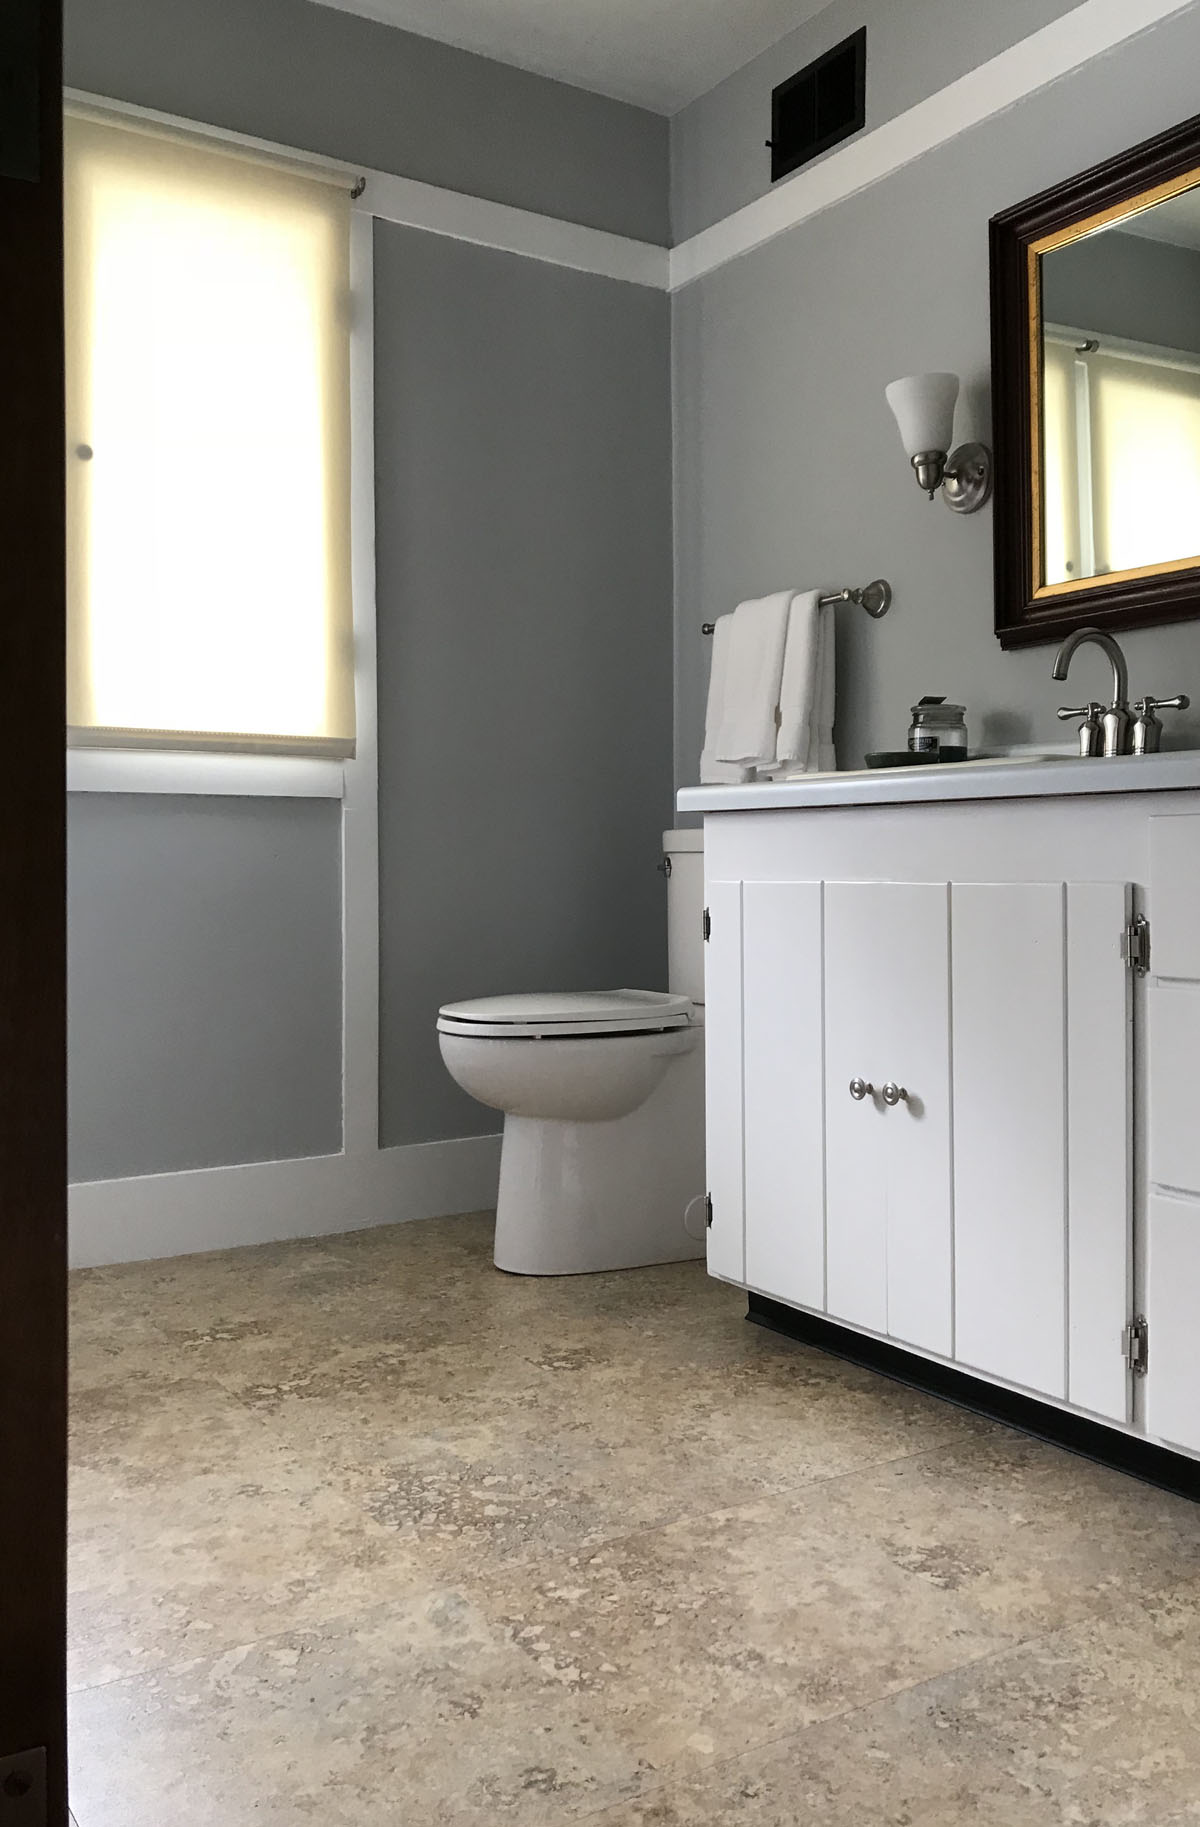 The bathroom at the Delbert Meier House before remodeling